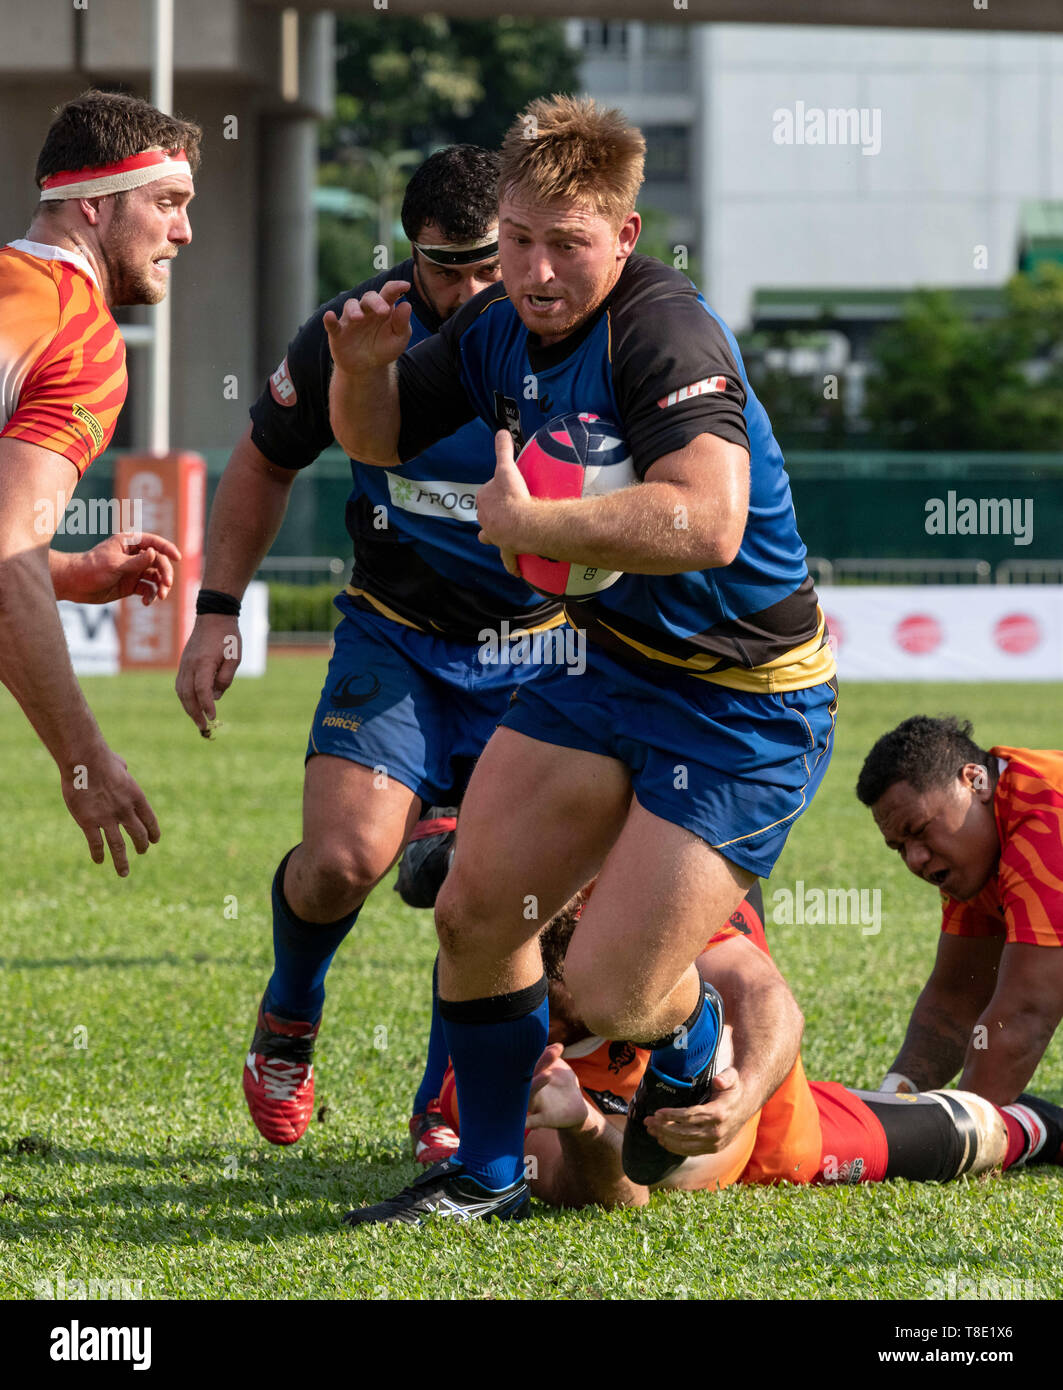 Hong Kong, China. 12th May, 2019. Markus VANZATI escapes a tackle.Western Force vs South China Tigers Global Rapid Rugby. The Western Force make their inaugural appearance in Hong Kong facing off against the FWD South China Tigers in the finale of the Global Rapid Rugby Asian Showcase Series Credit: Jayne Russell/ZUMA Wire/Alamy Live News Stock Photo